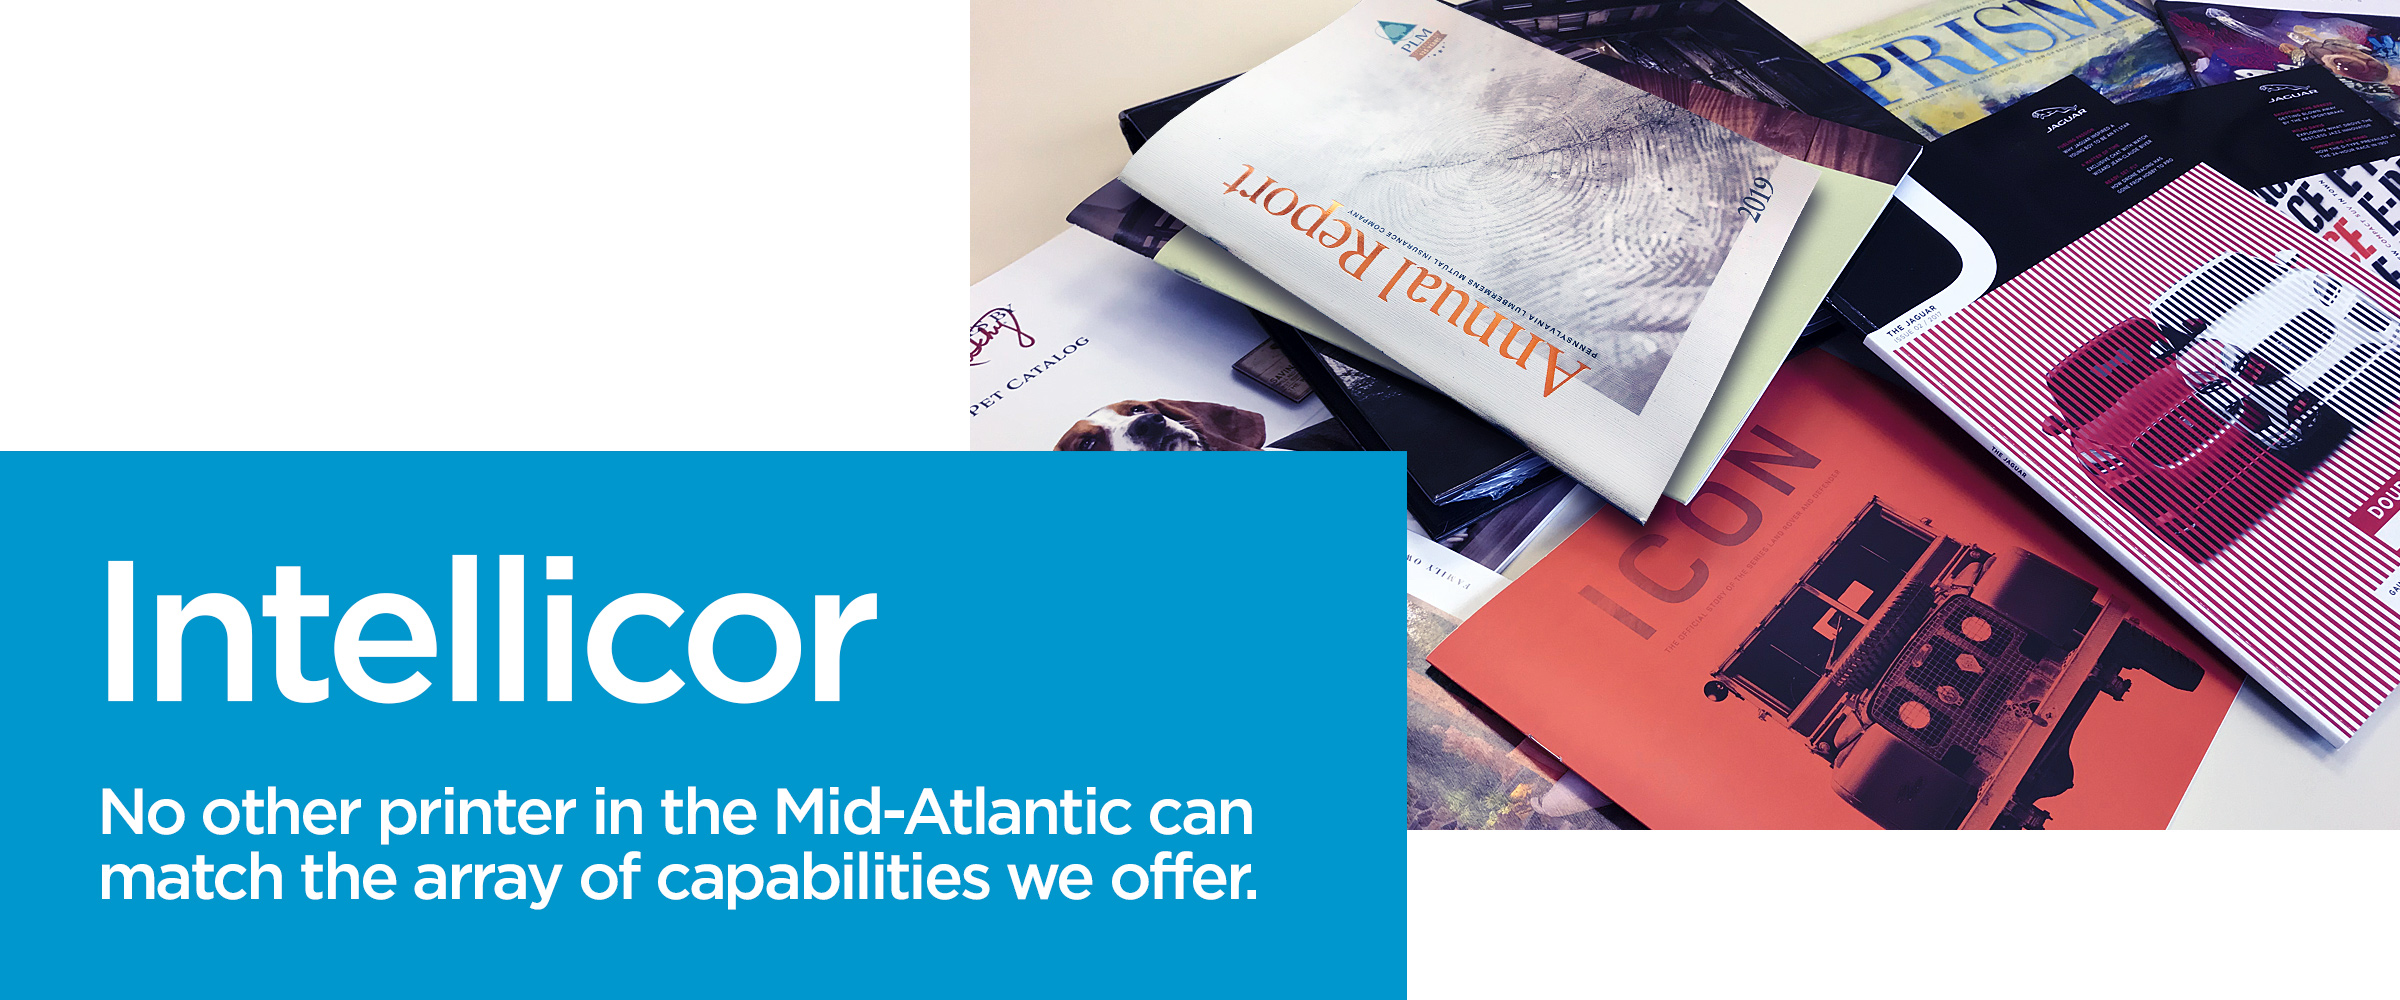 No other printer in the Mid-Atlantic can offer the array of capabilities we offer.